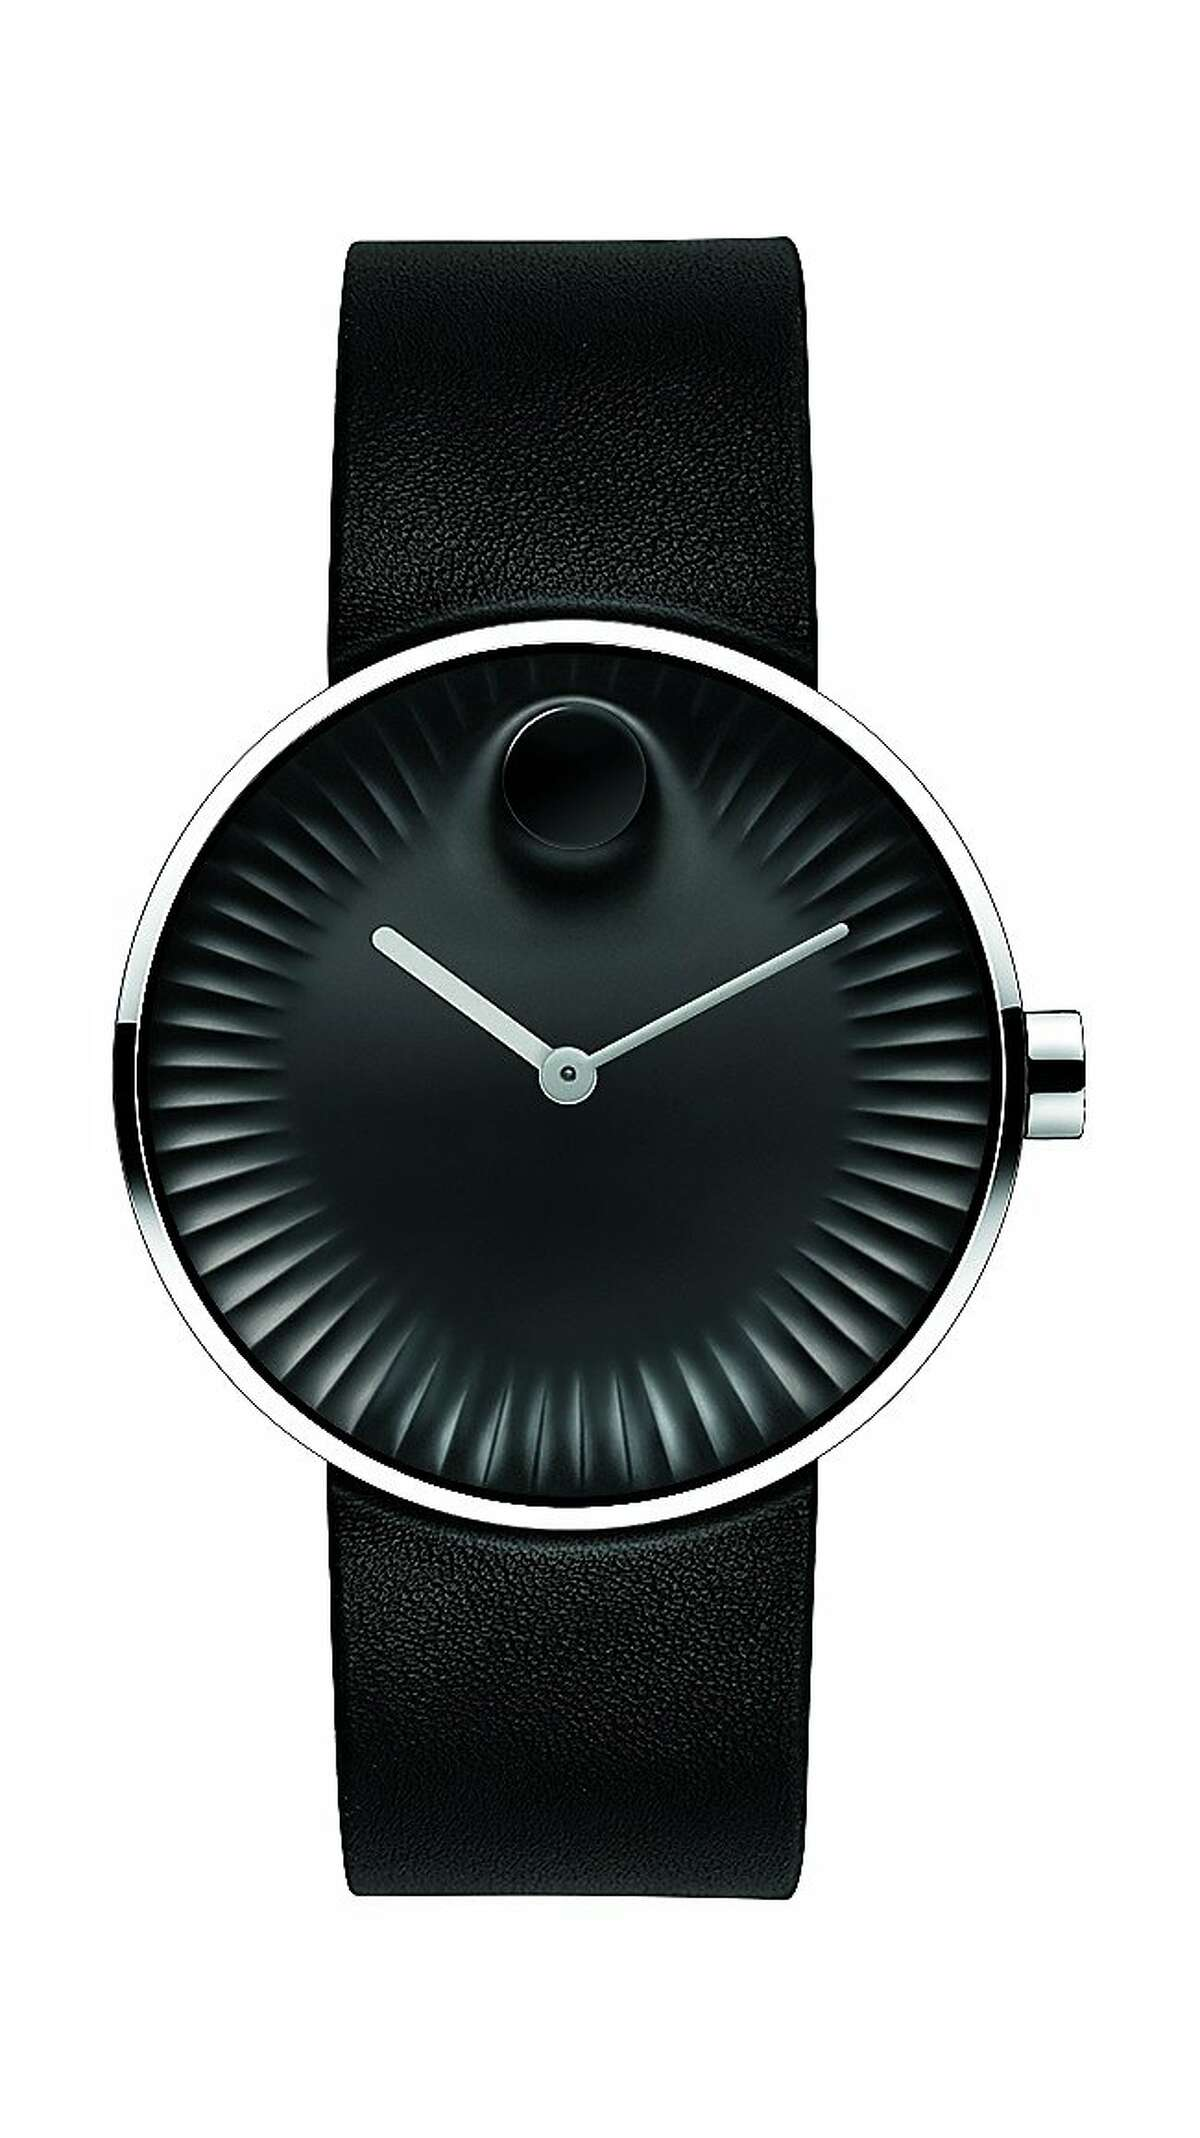 Swiss watchmaker Movado and industrial designer Yves Behar have collaborated on a new timepiece collection called Movado Edge.(( FOLLOWED BY INDIVIDUAL DETAILS BELOW.)) Name: Movado Edge SKU: 3680002 Materials: 40 mm polished stainless steel case, concave sandblasted black aluminum dial with raised polished tonal dot, sculpted ray-textured edge, matte gray hour hand and glossy gray minute hand, black rubber strap with polished stainless steel tongue buckle. Price: $495. Credit: Movado